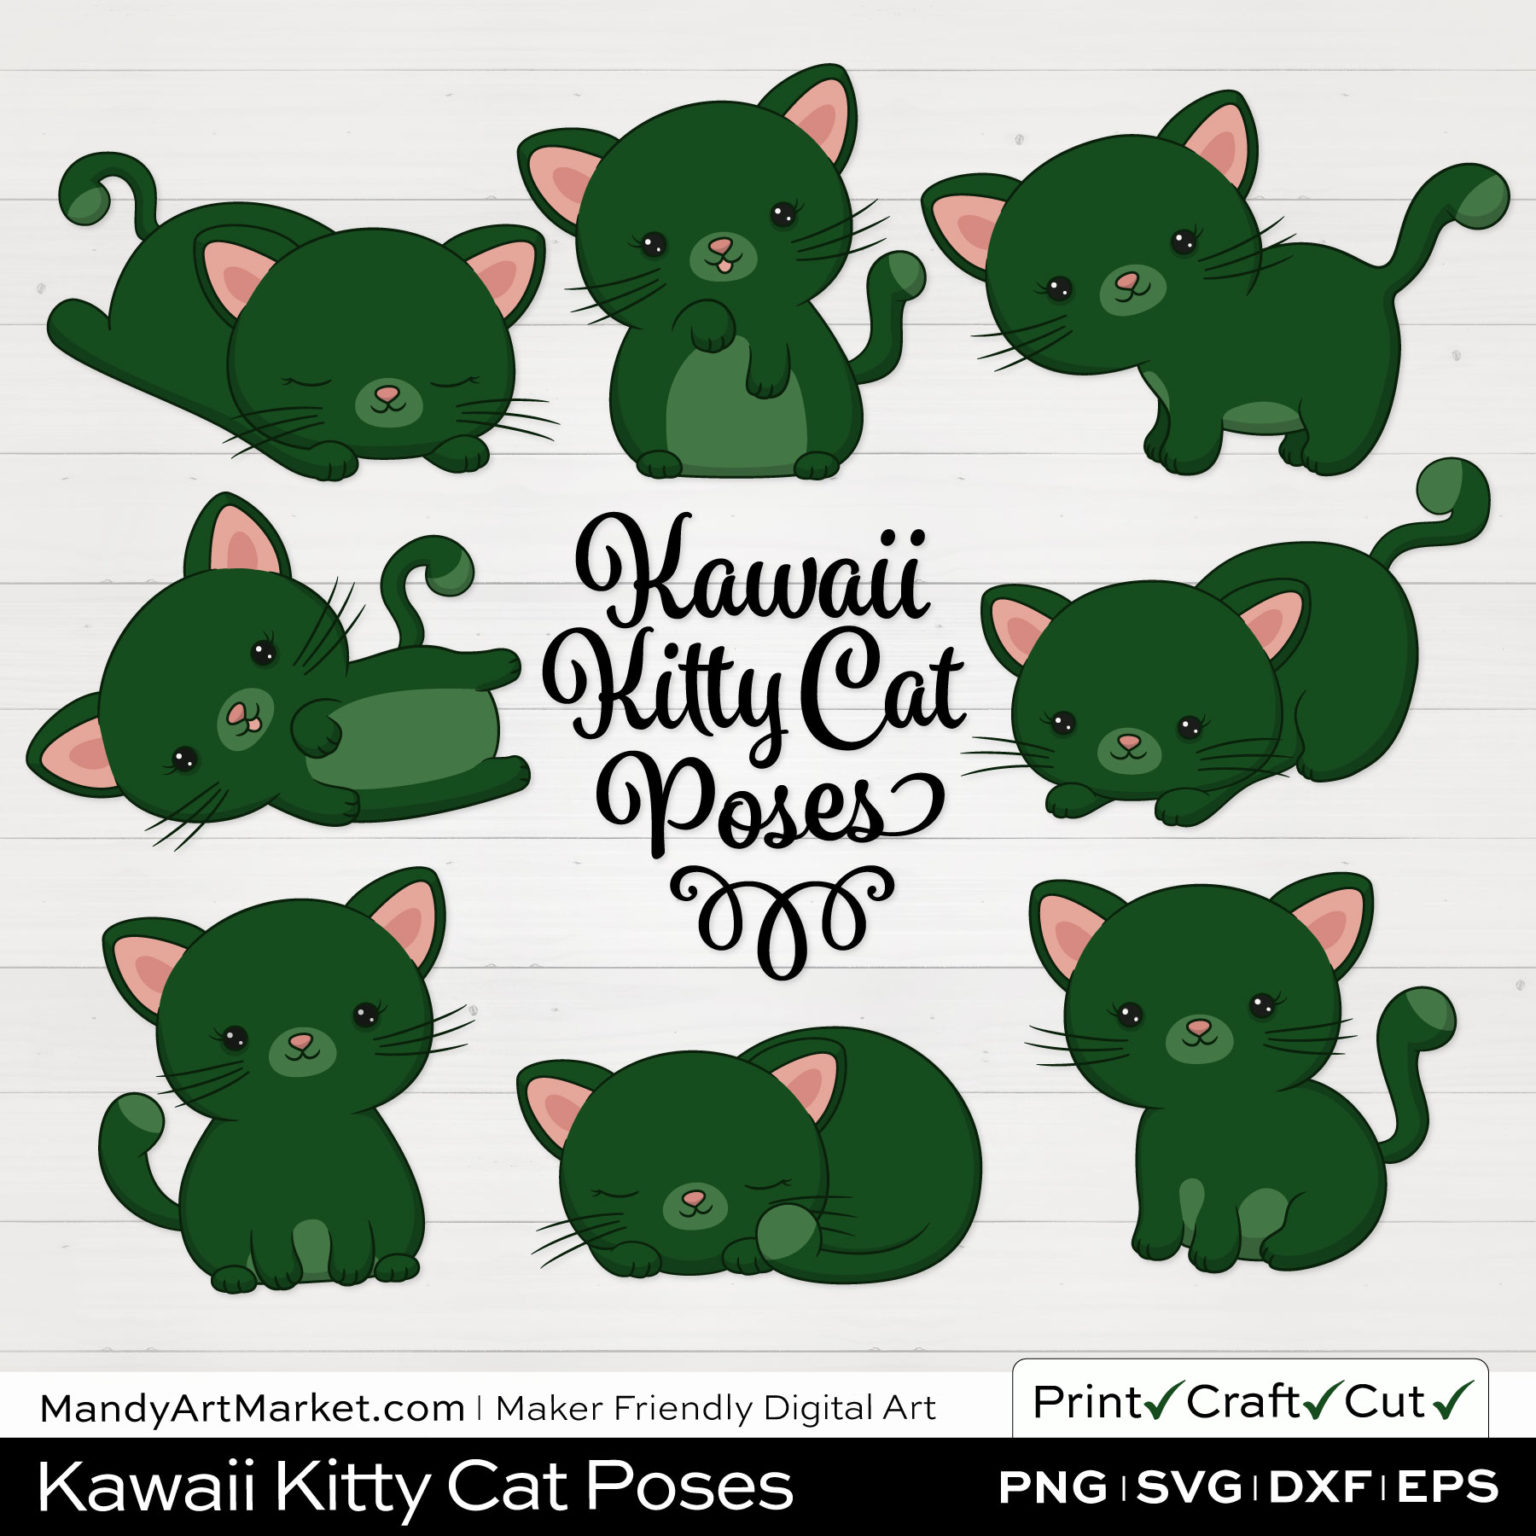 Forest Green Kawaii Kitty Cat Poses Clipart on White Background